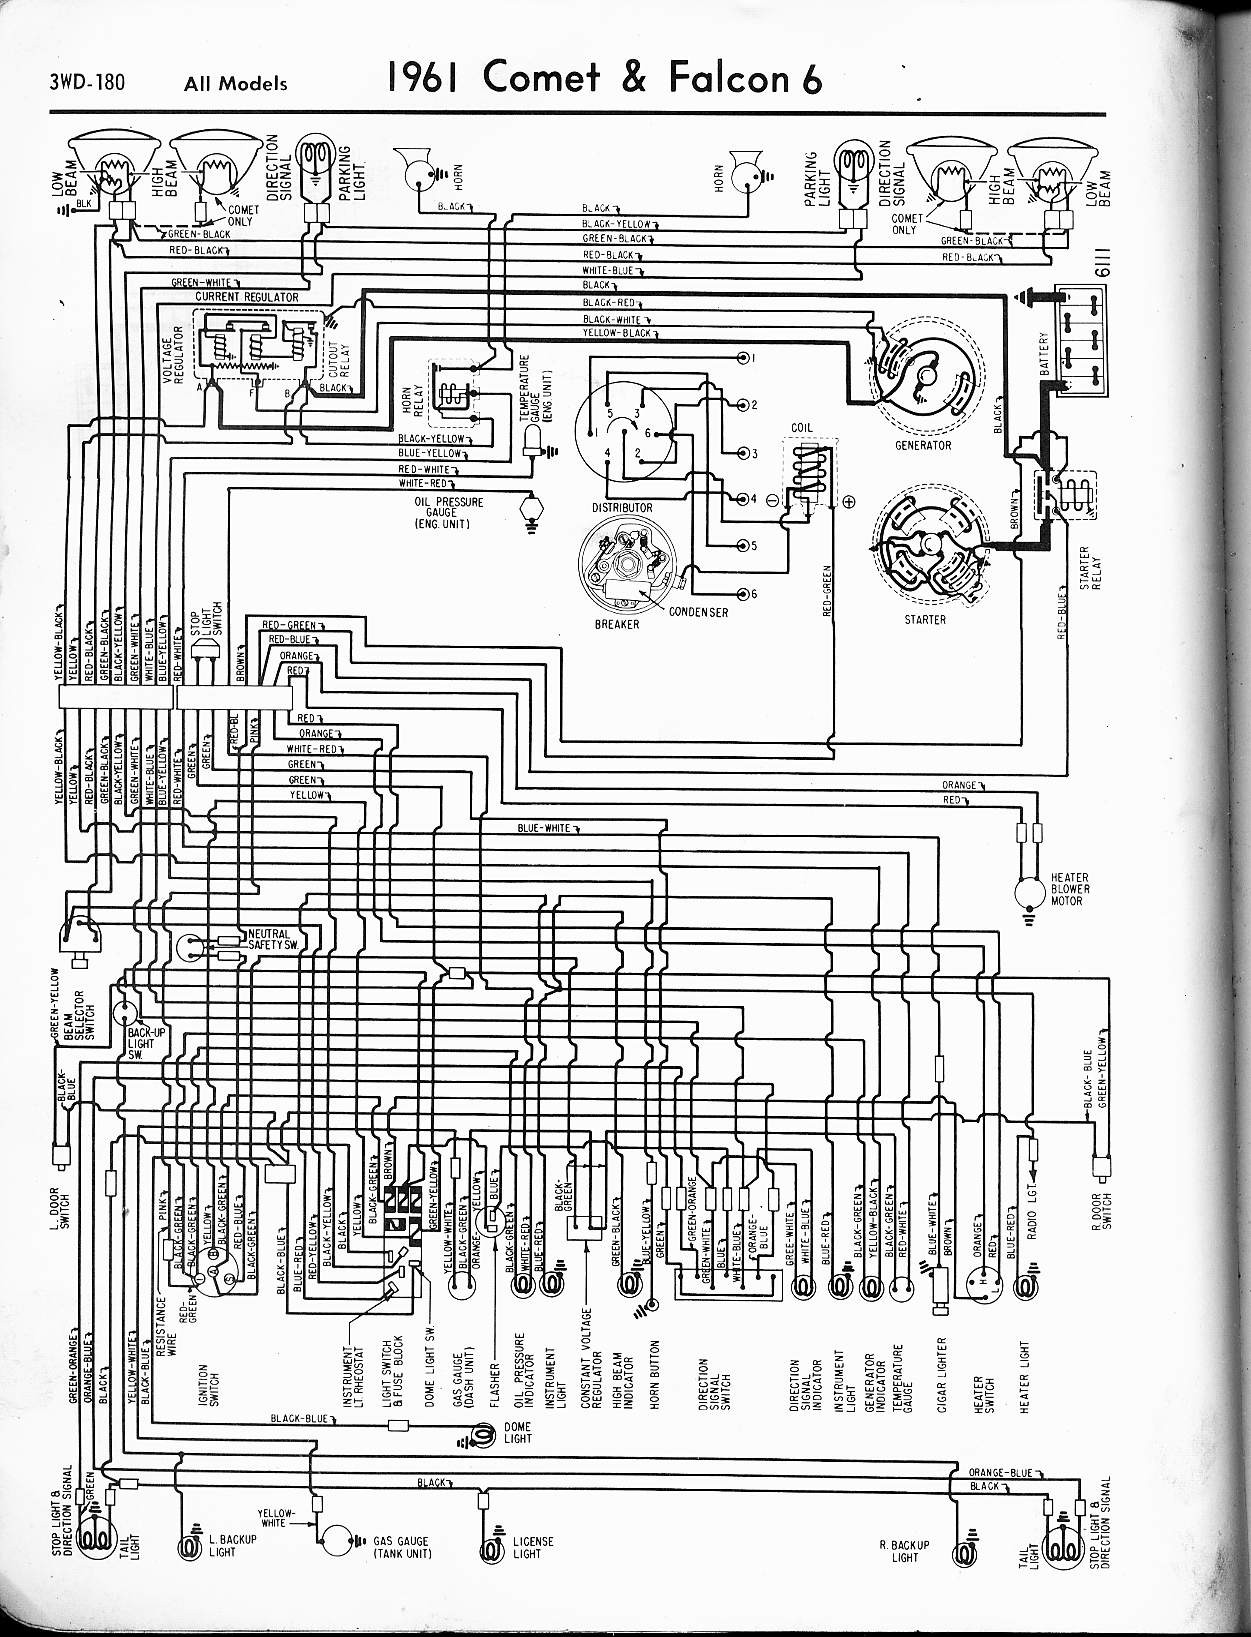 Barefoot Spas Wiring Diagram For Auto Electrical Coleman Spa Ba Diy Enthusiasts Diagrams U2022 Rh Broadwaycomputers Us Hot Tub Motor